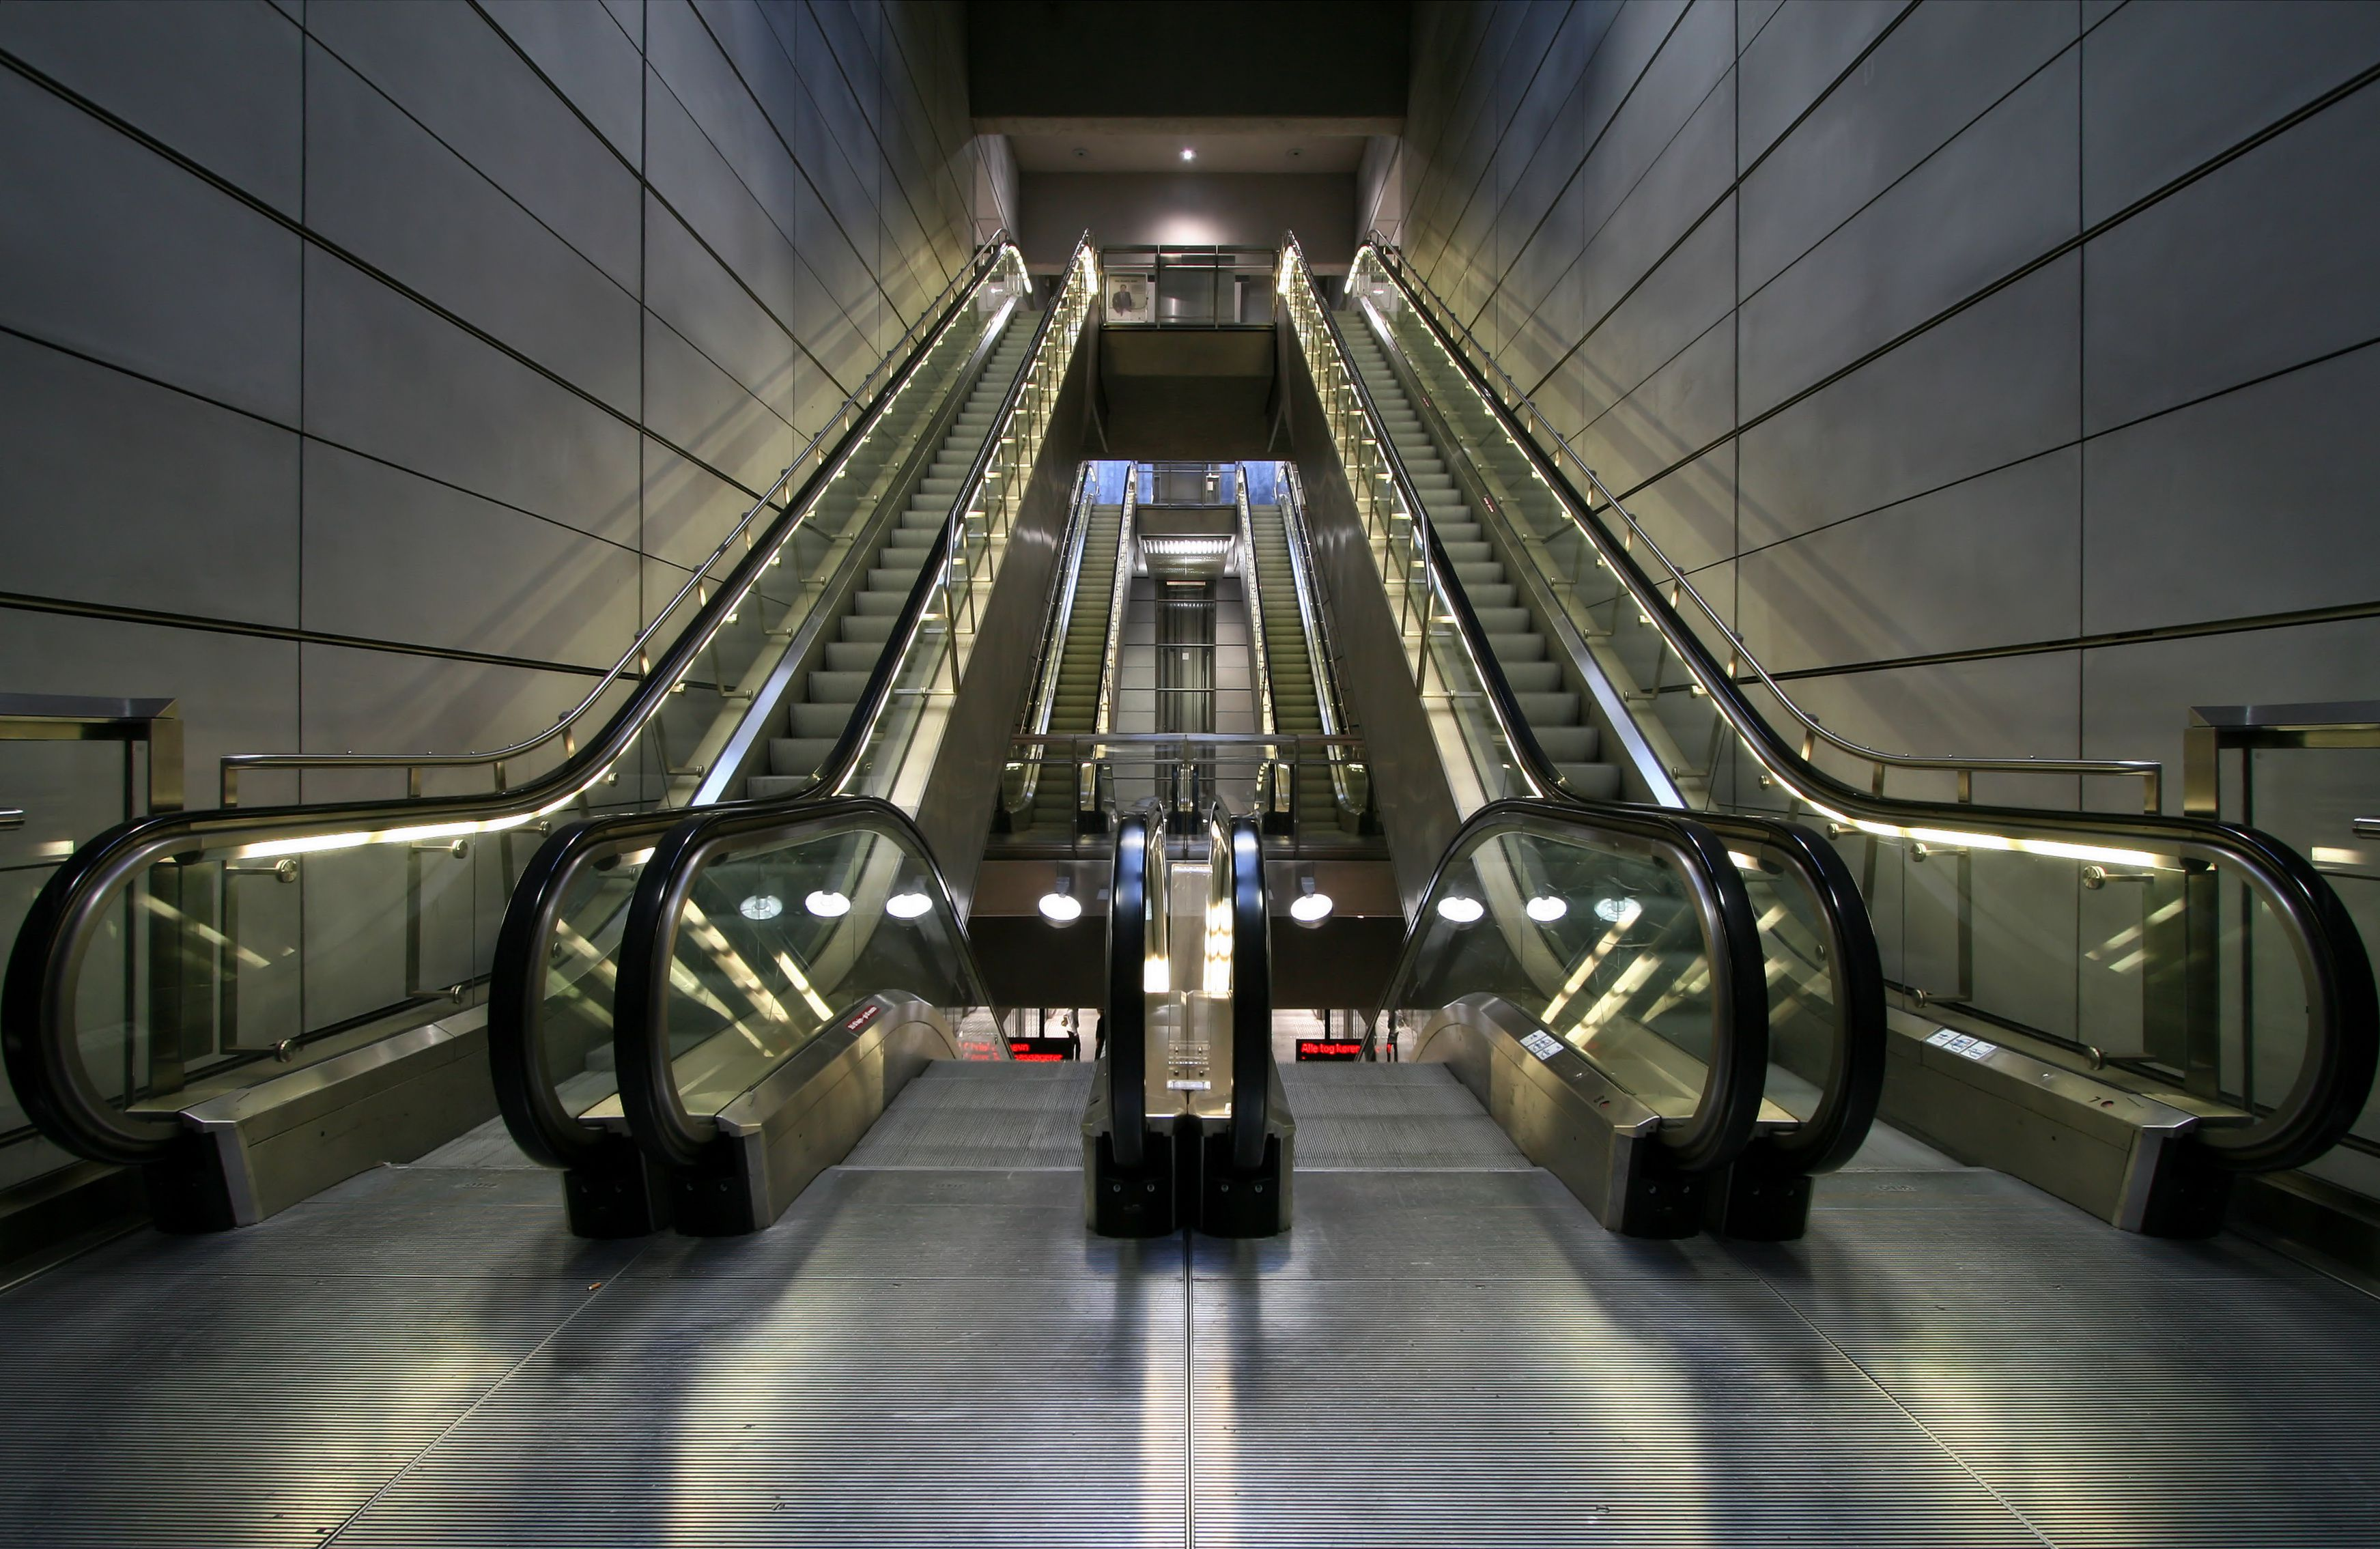 Who Invented the Escalator?